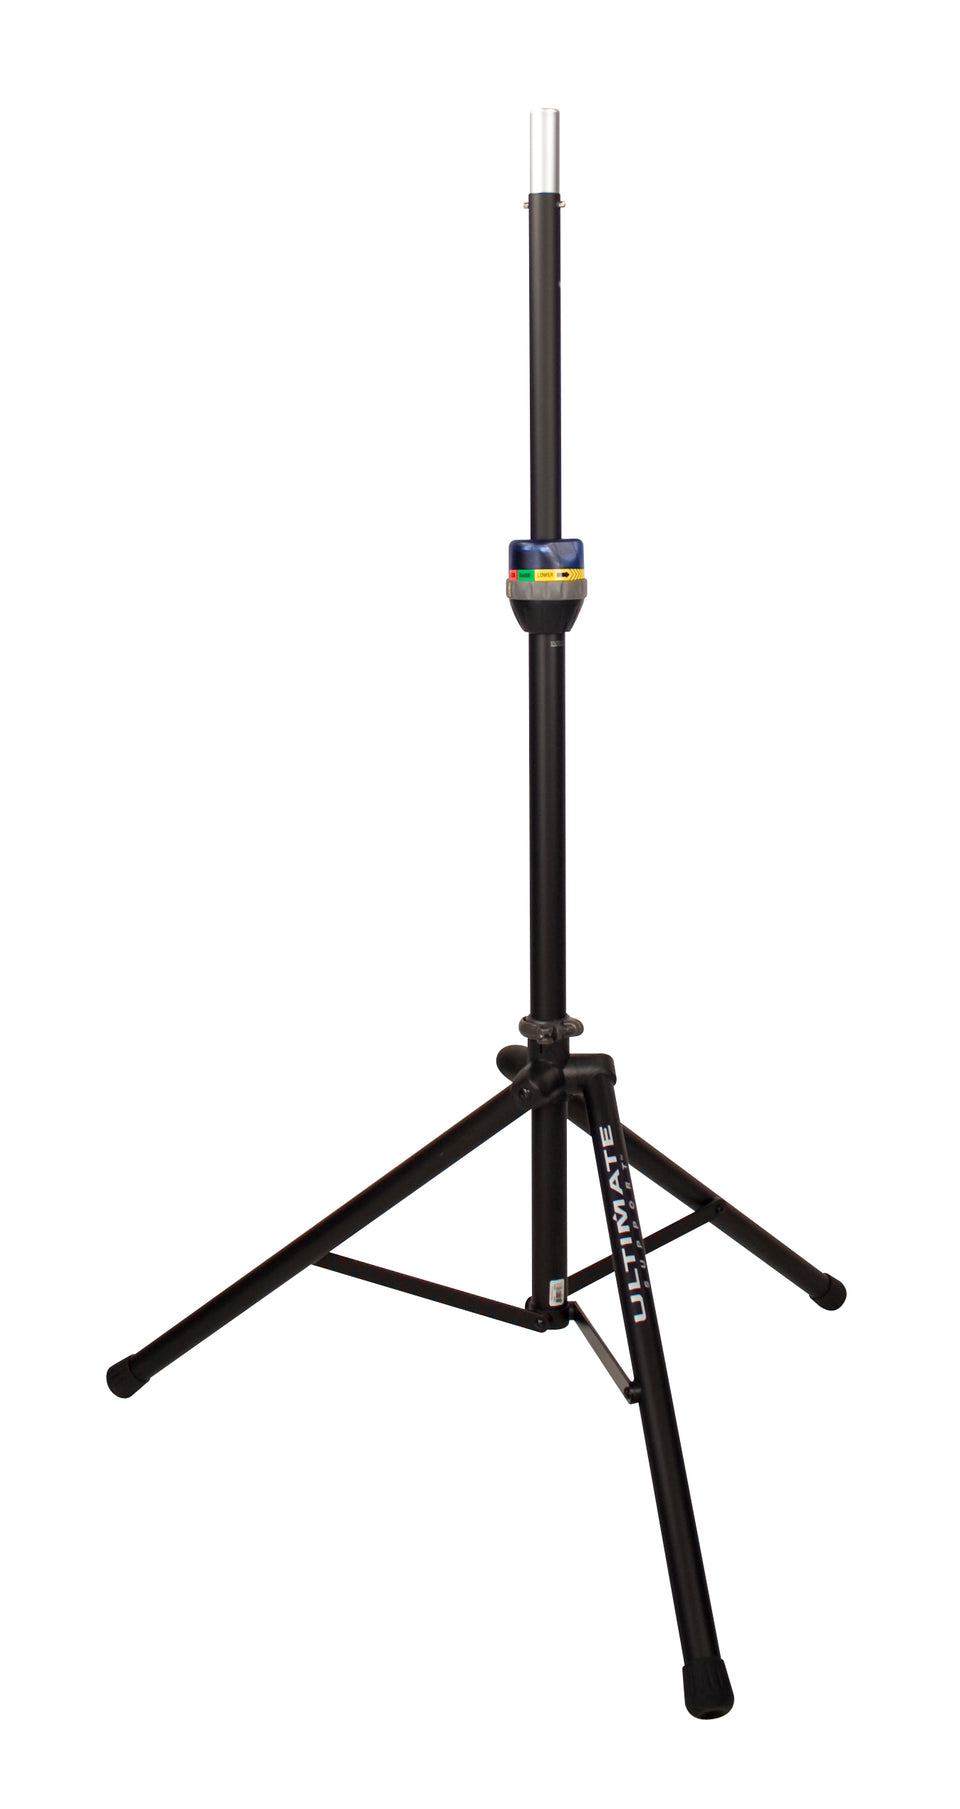 Ultimate Support TS-90B TeleLock Series Lift-Assist Aluminum Speaker Stand With Integrated Speaker Adapter